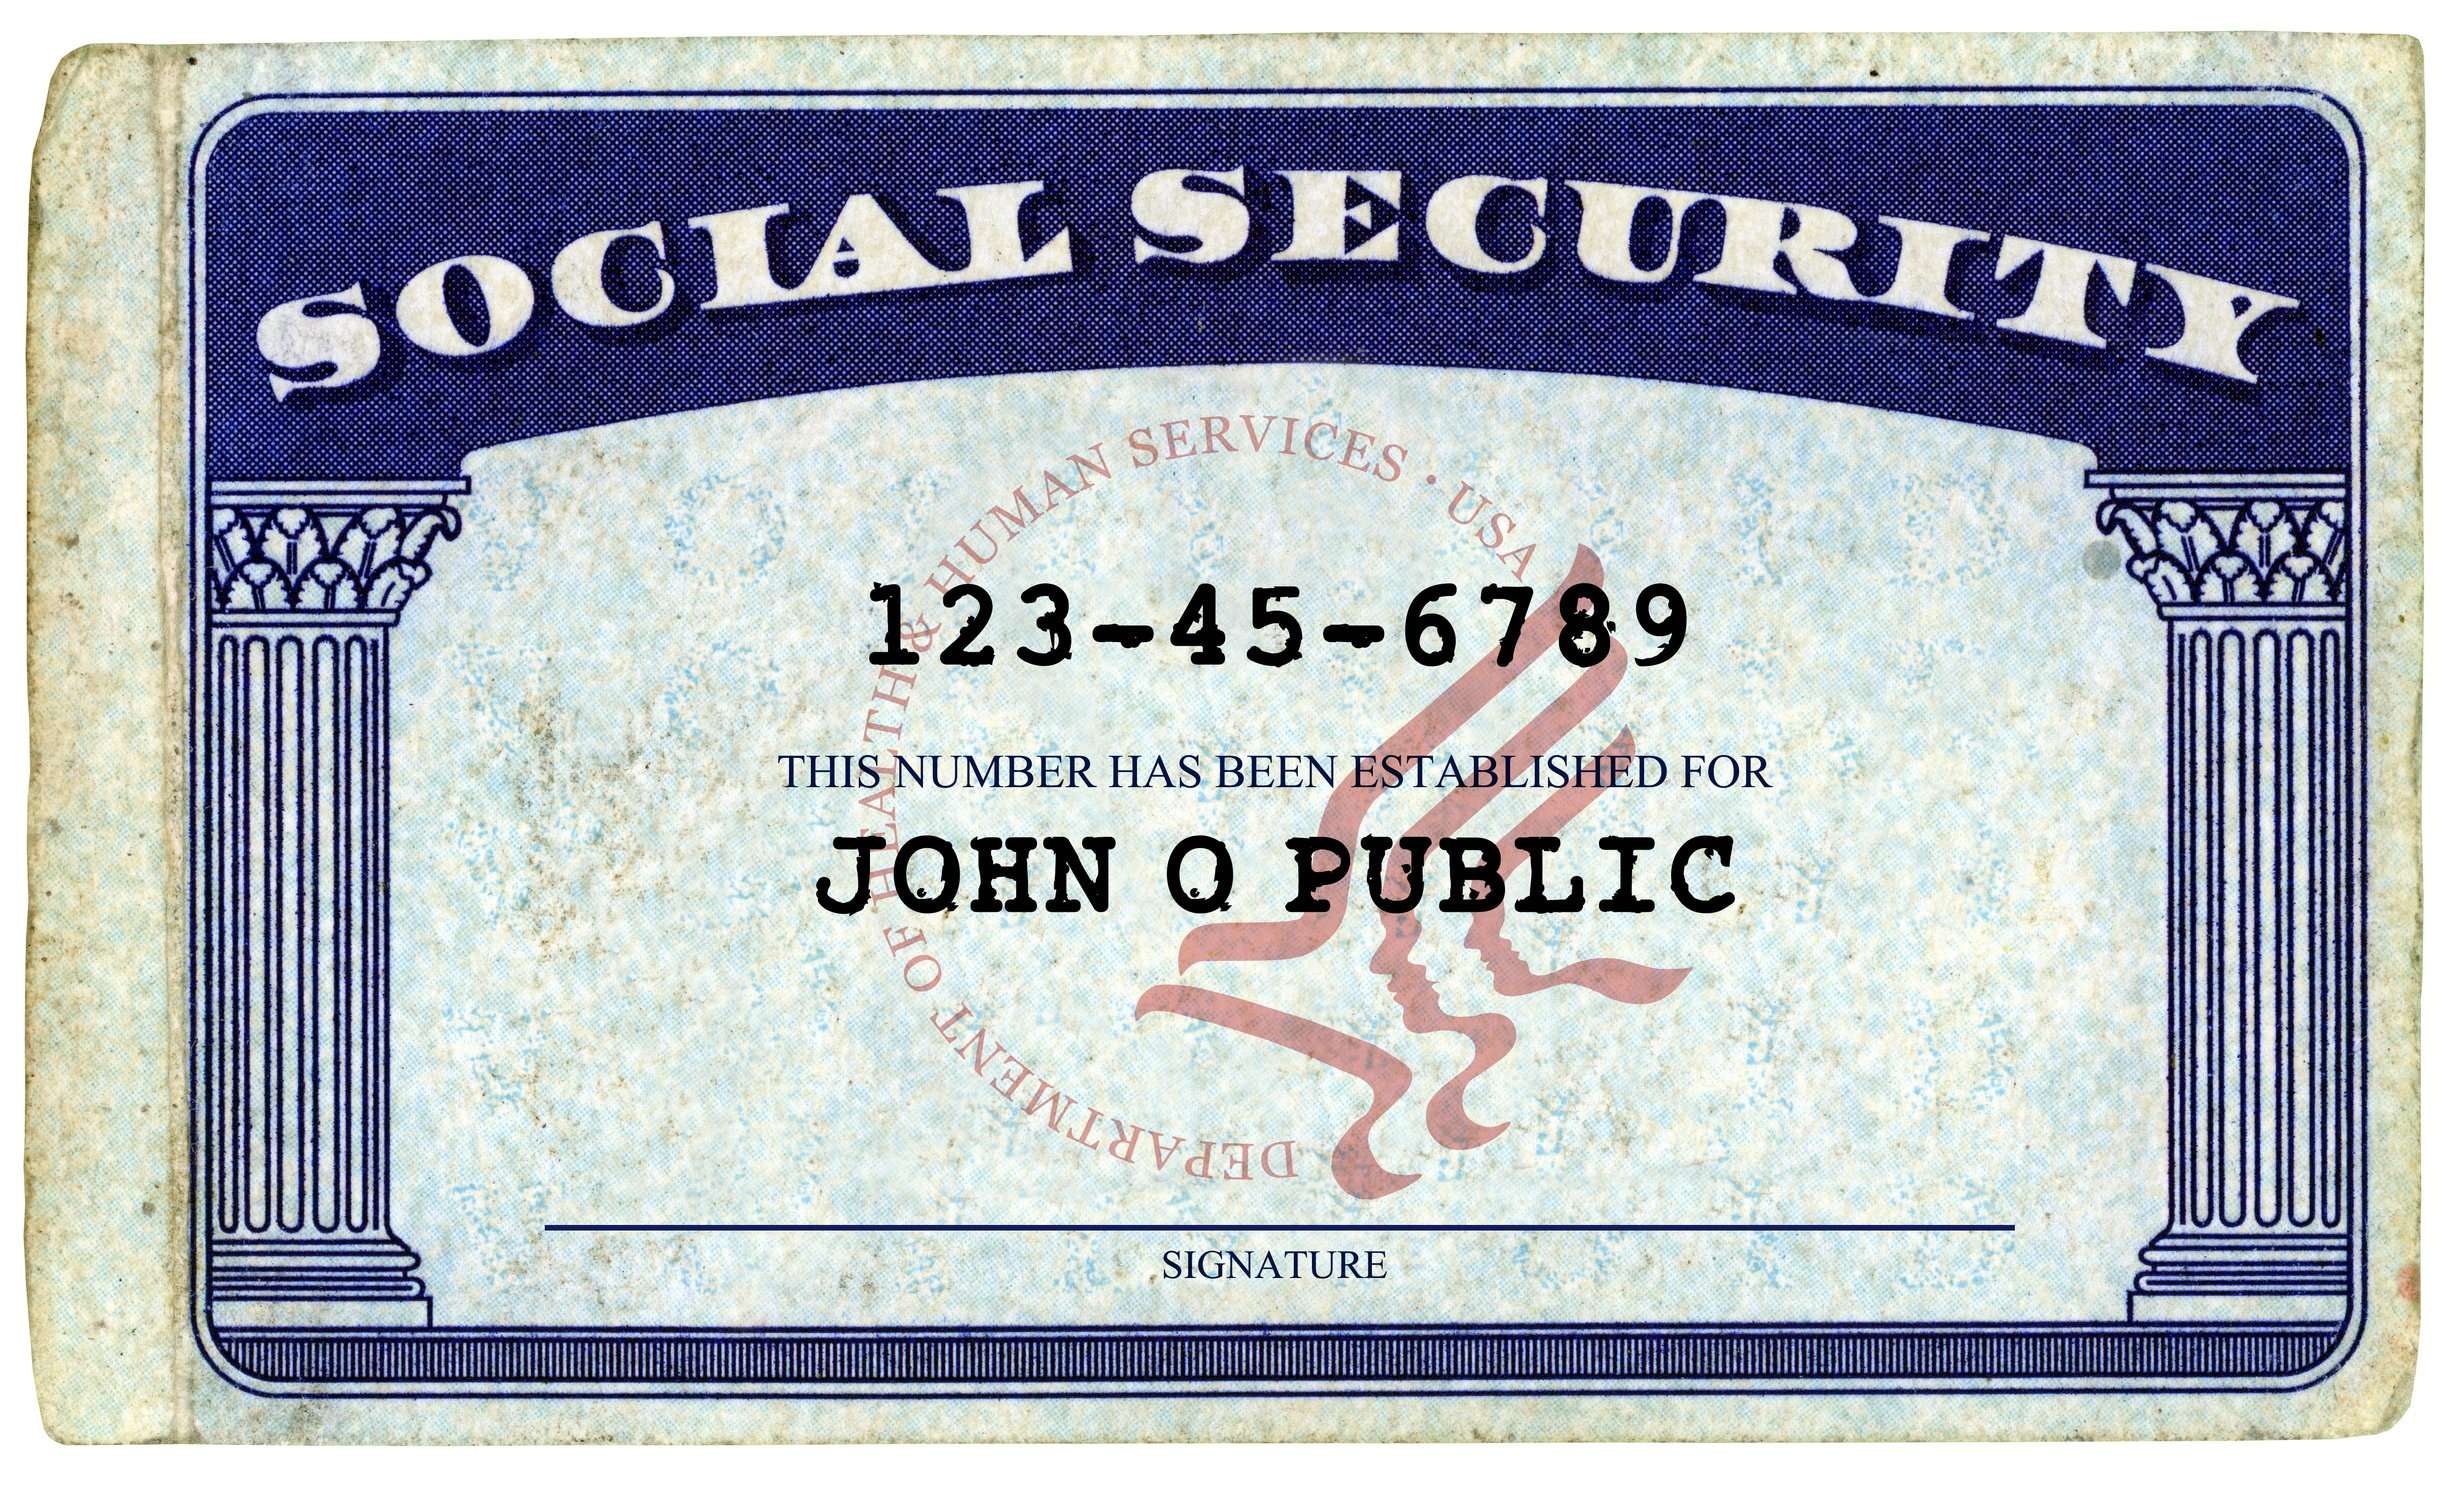 Social Security Card - John Q Public